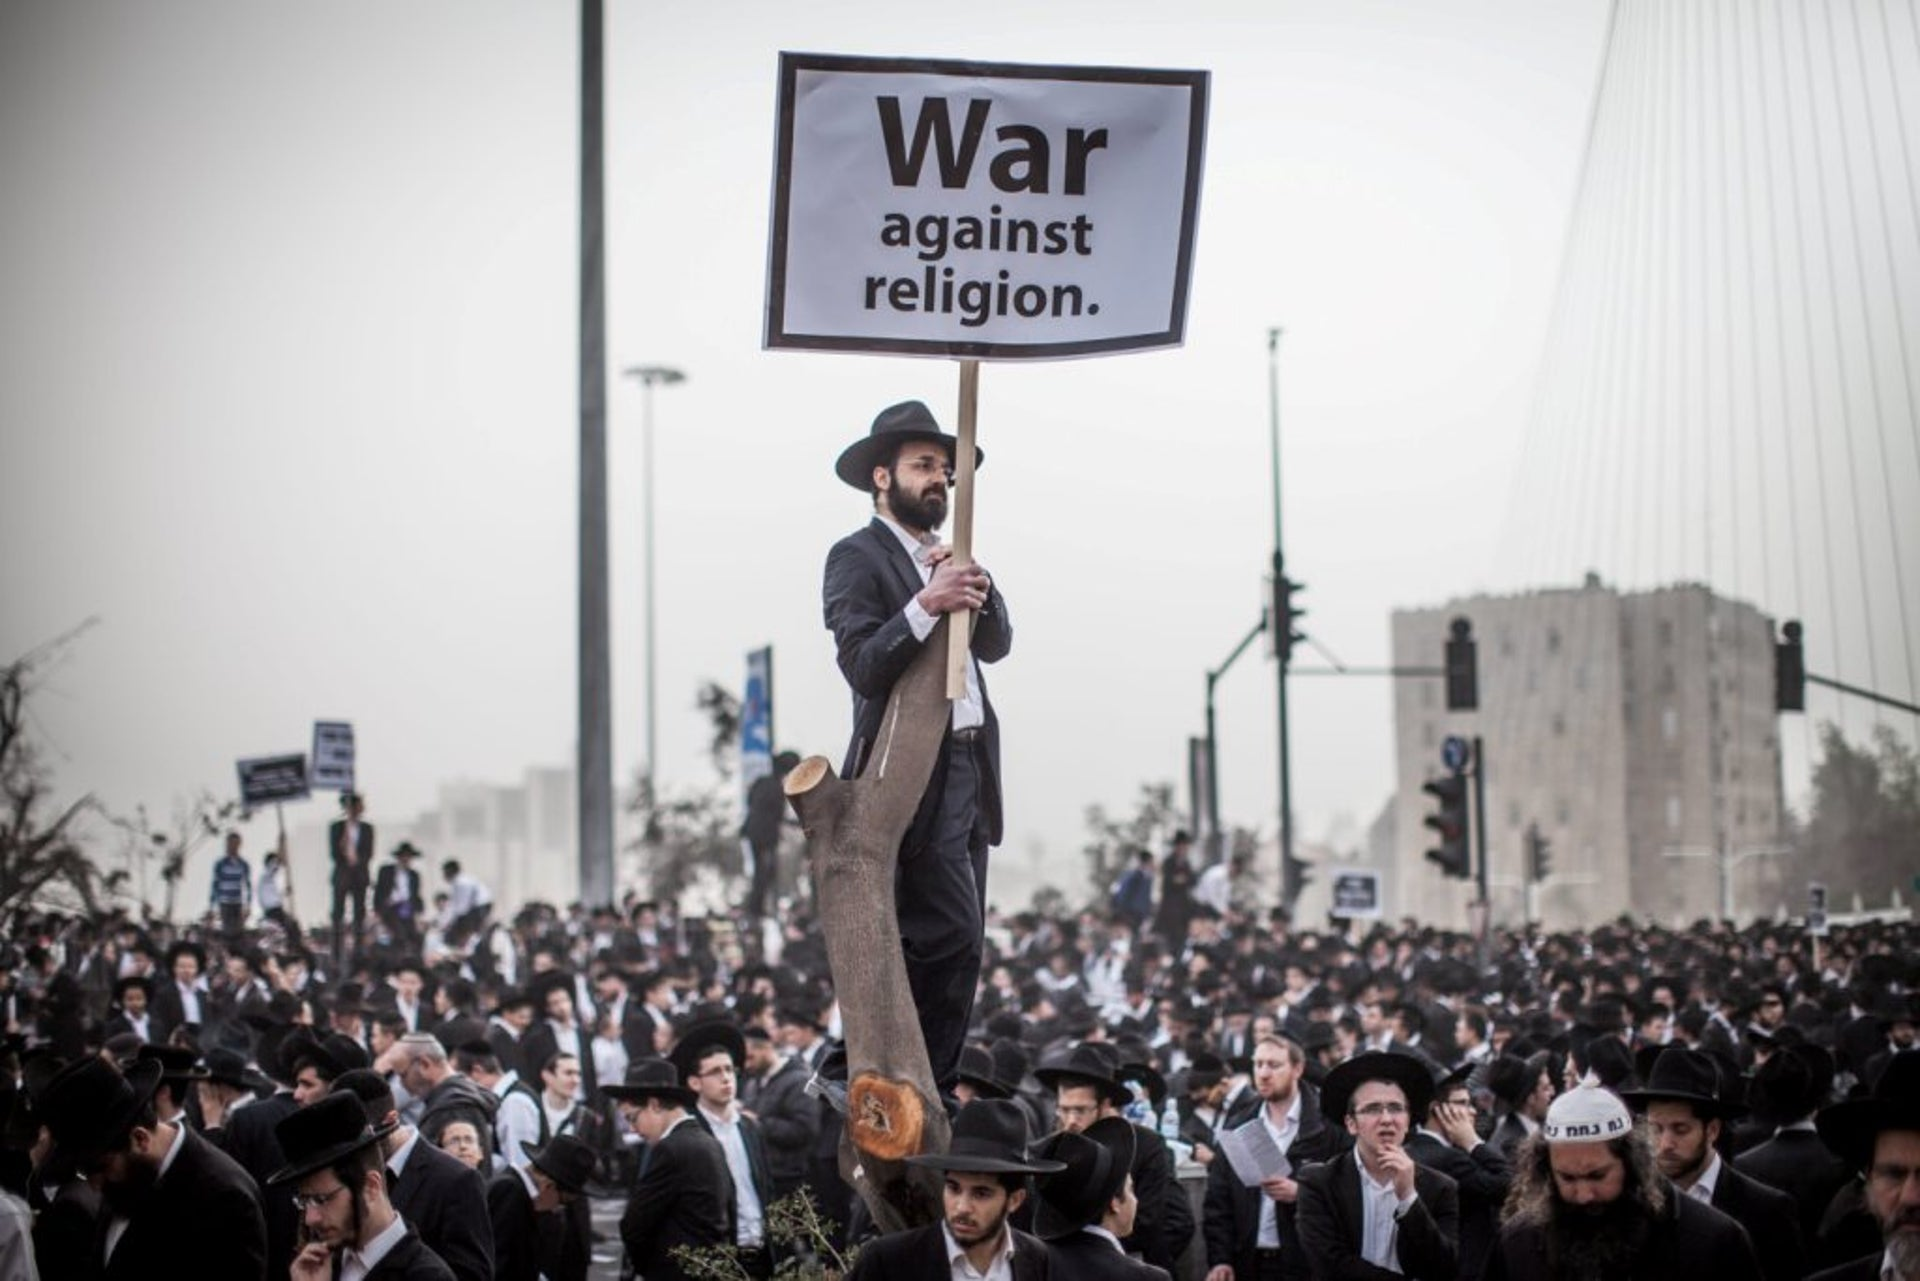 2014 | Jerusalem, Ultra-Orthodox Jews protest against legislation that would end religious exemptions for their community from Israel's universal conscription requirements.